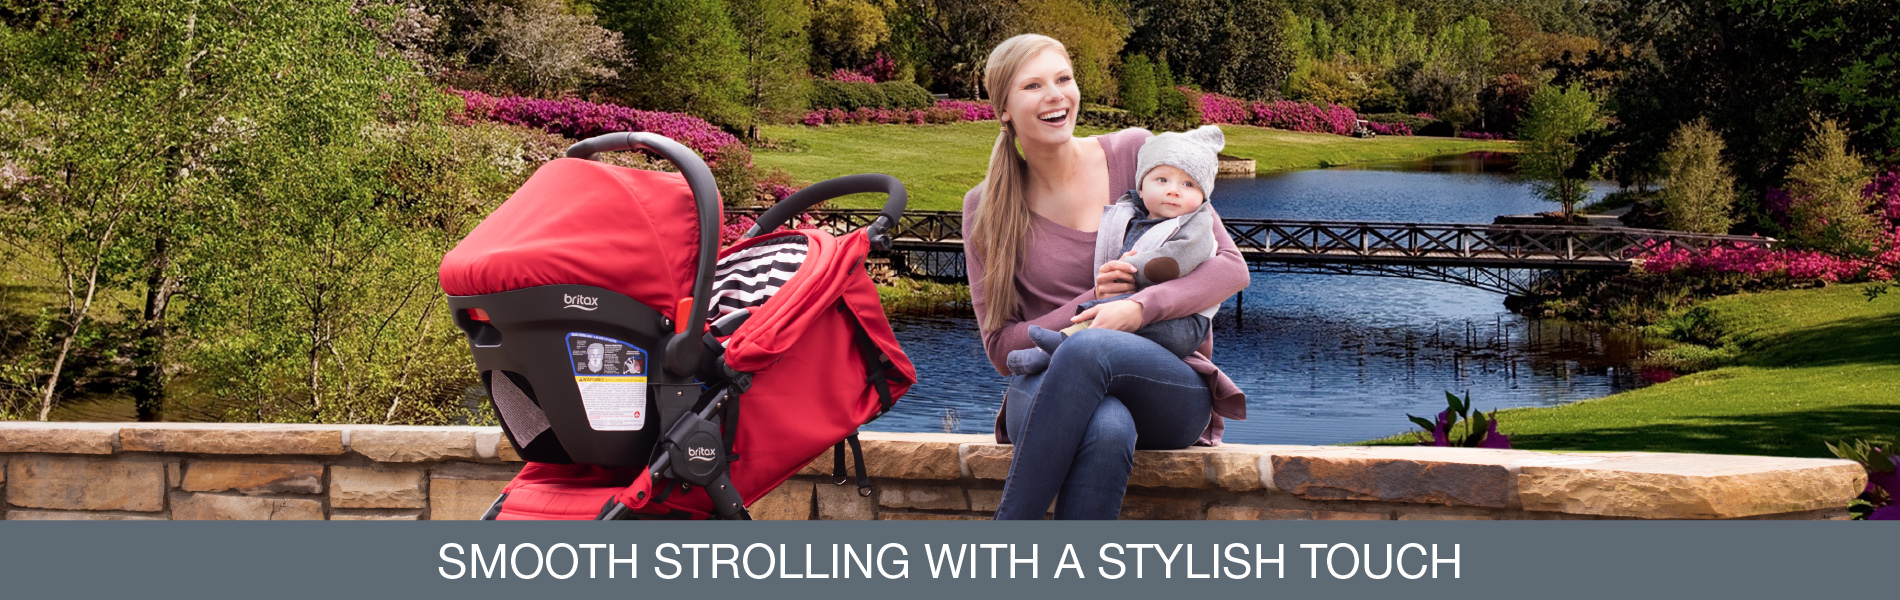 The Pathway Stroller and Travel System come in four bold fashions that peek out from below the canopies of both the stroller and car seat.